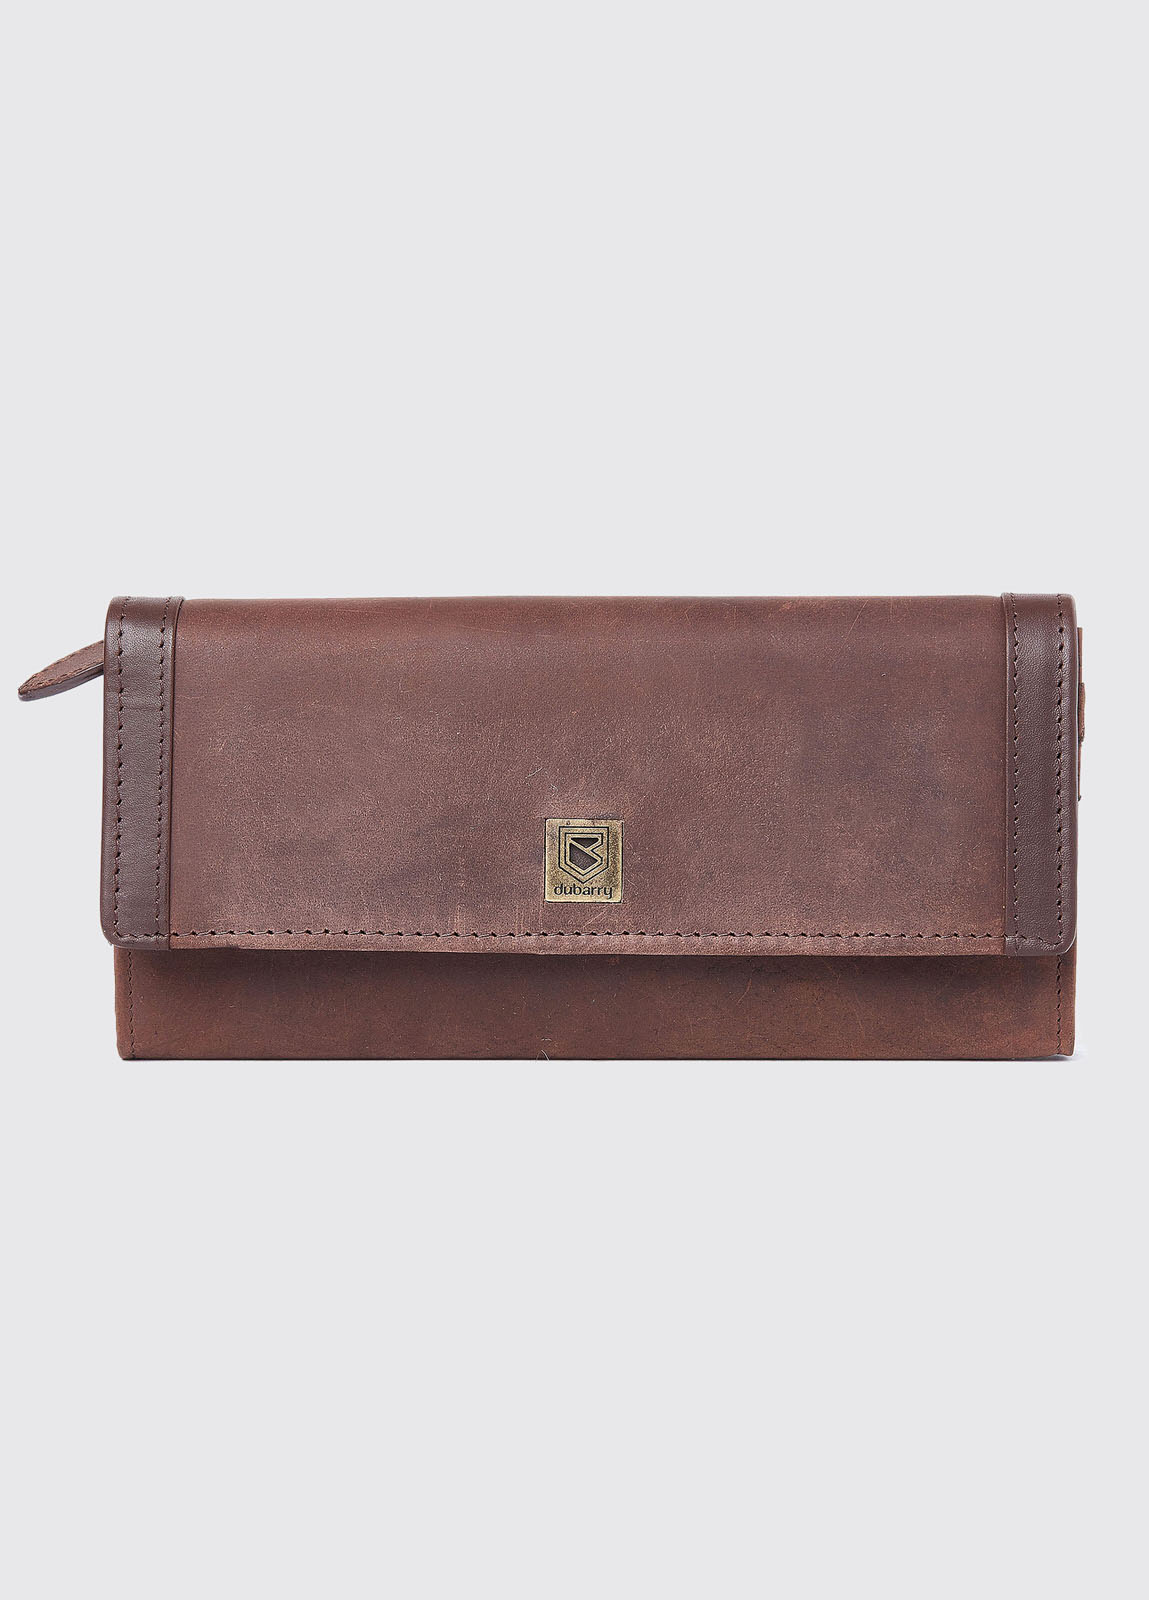 Collinstown Leather Wallet - Old Rum